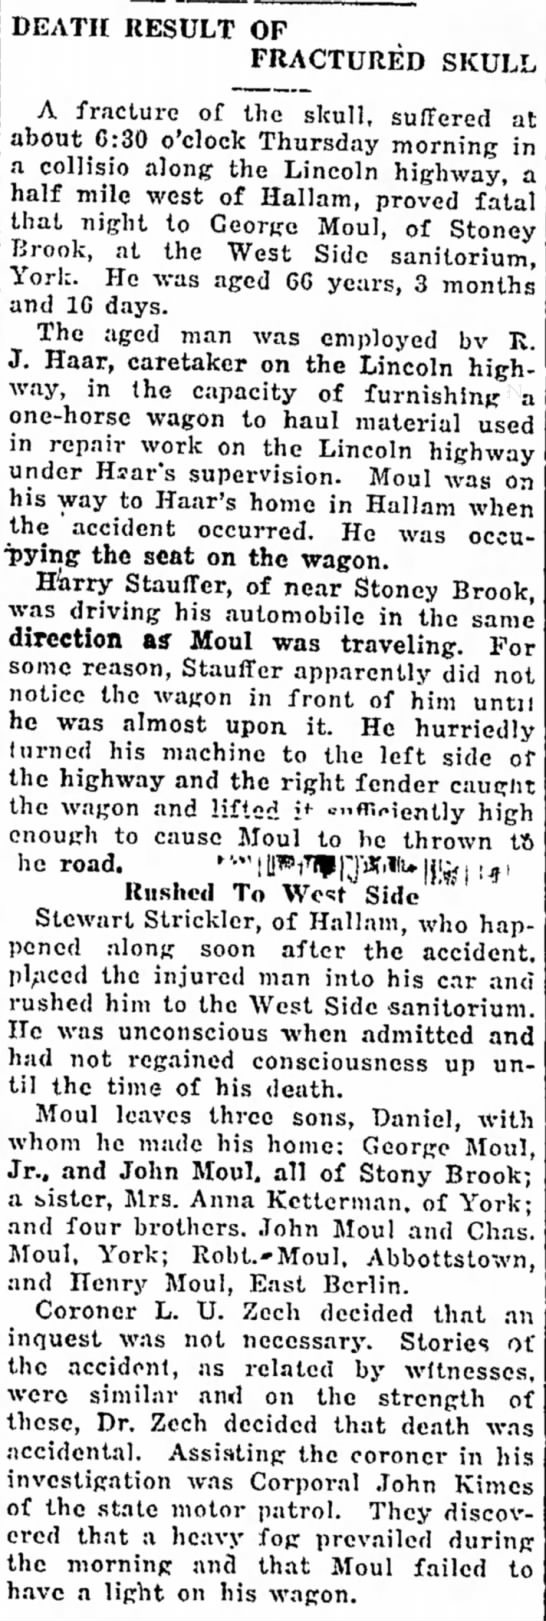 George Moul accident-Nov 1927 - meeting meeting she number succumbed recently...